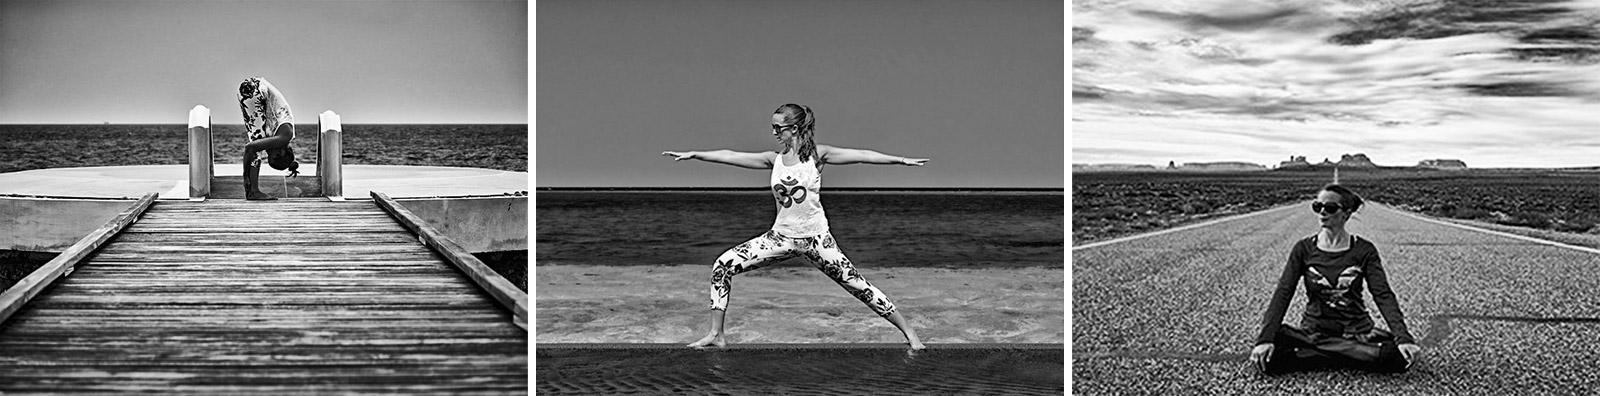 masterclass 101 alignment flexibility sida yoga dorchester dorset 1600px